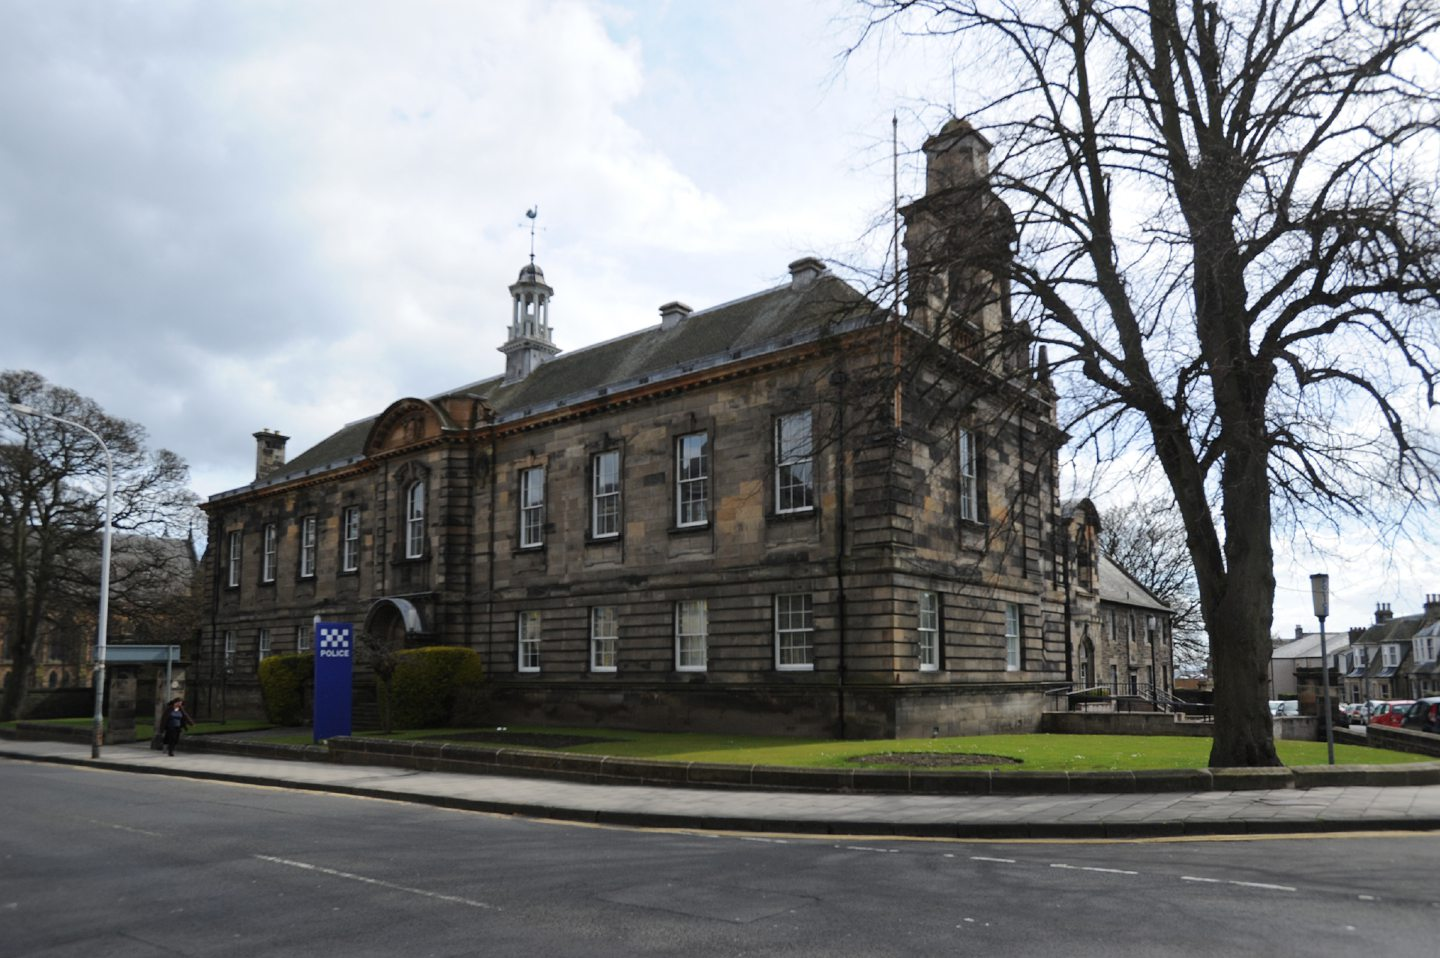 Kirkcaldy Police Station, where the court annexe is based.